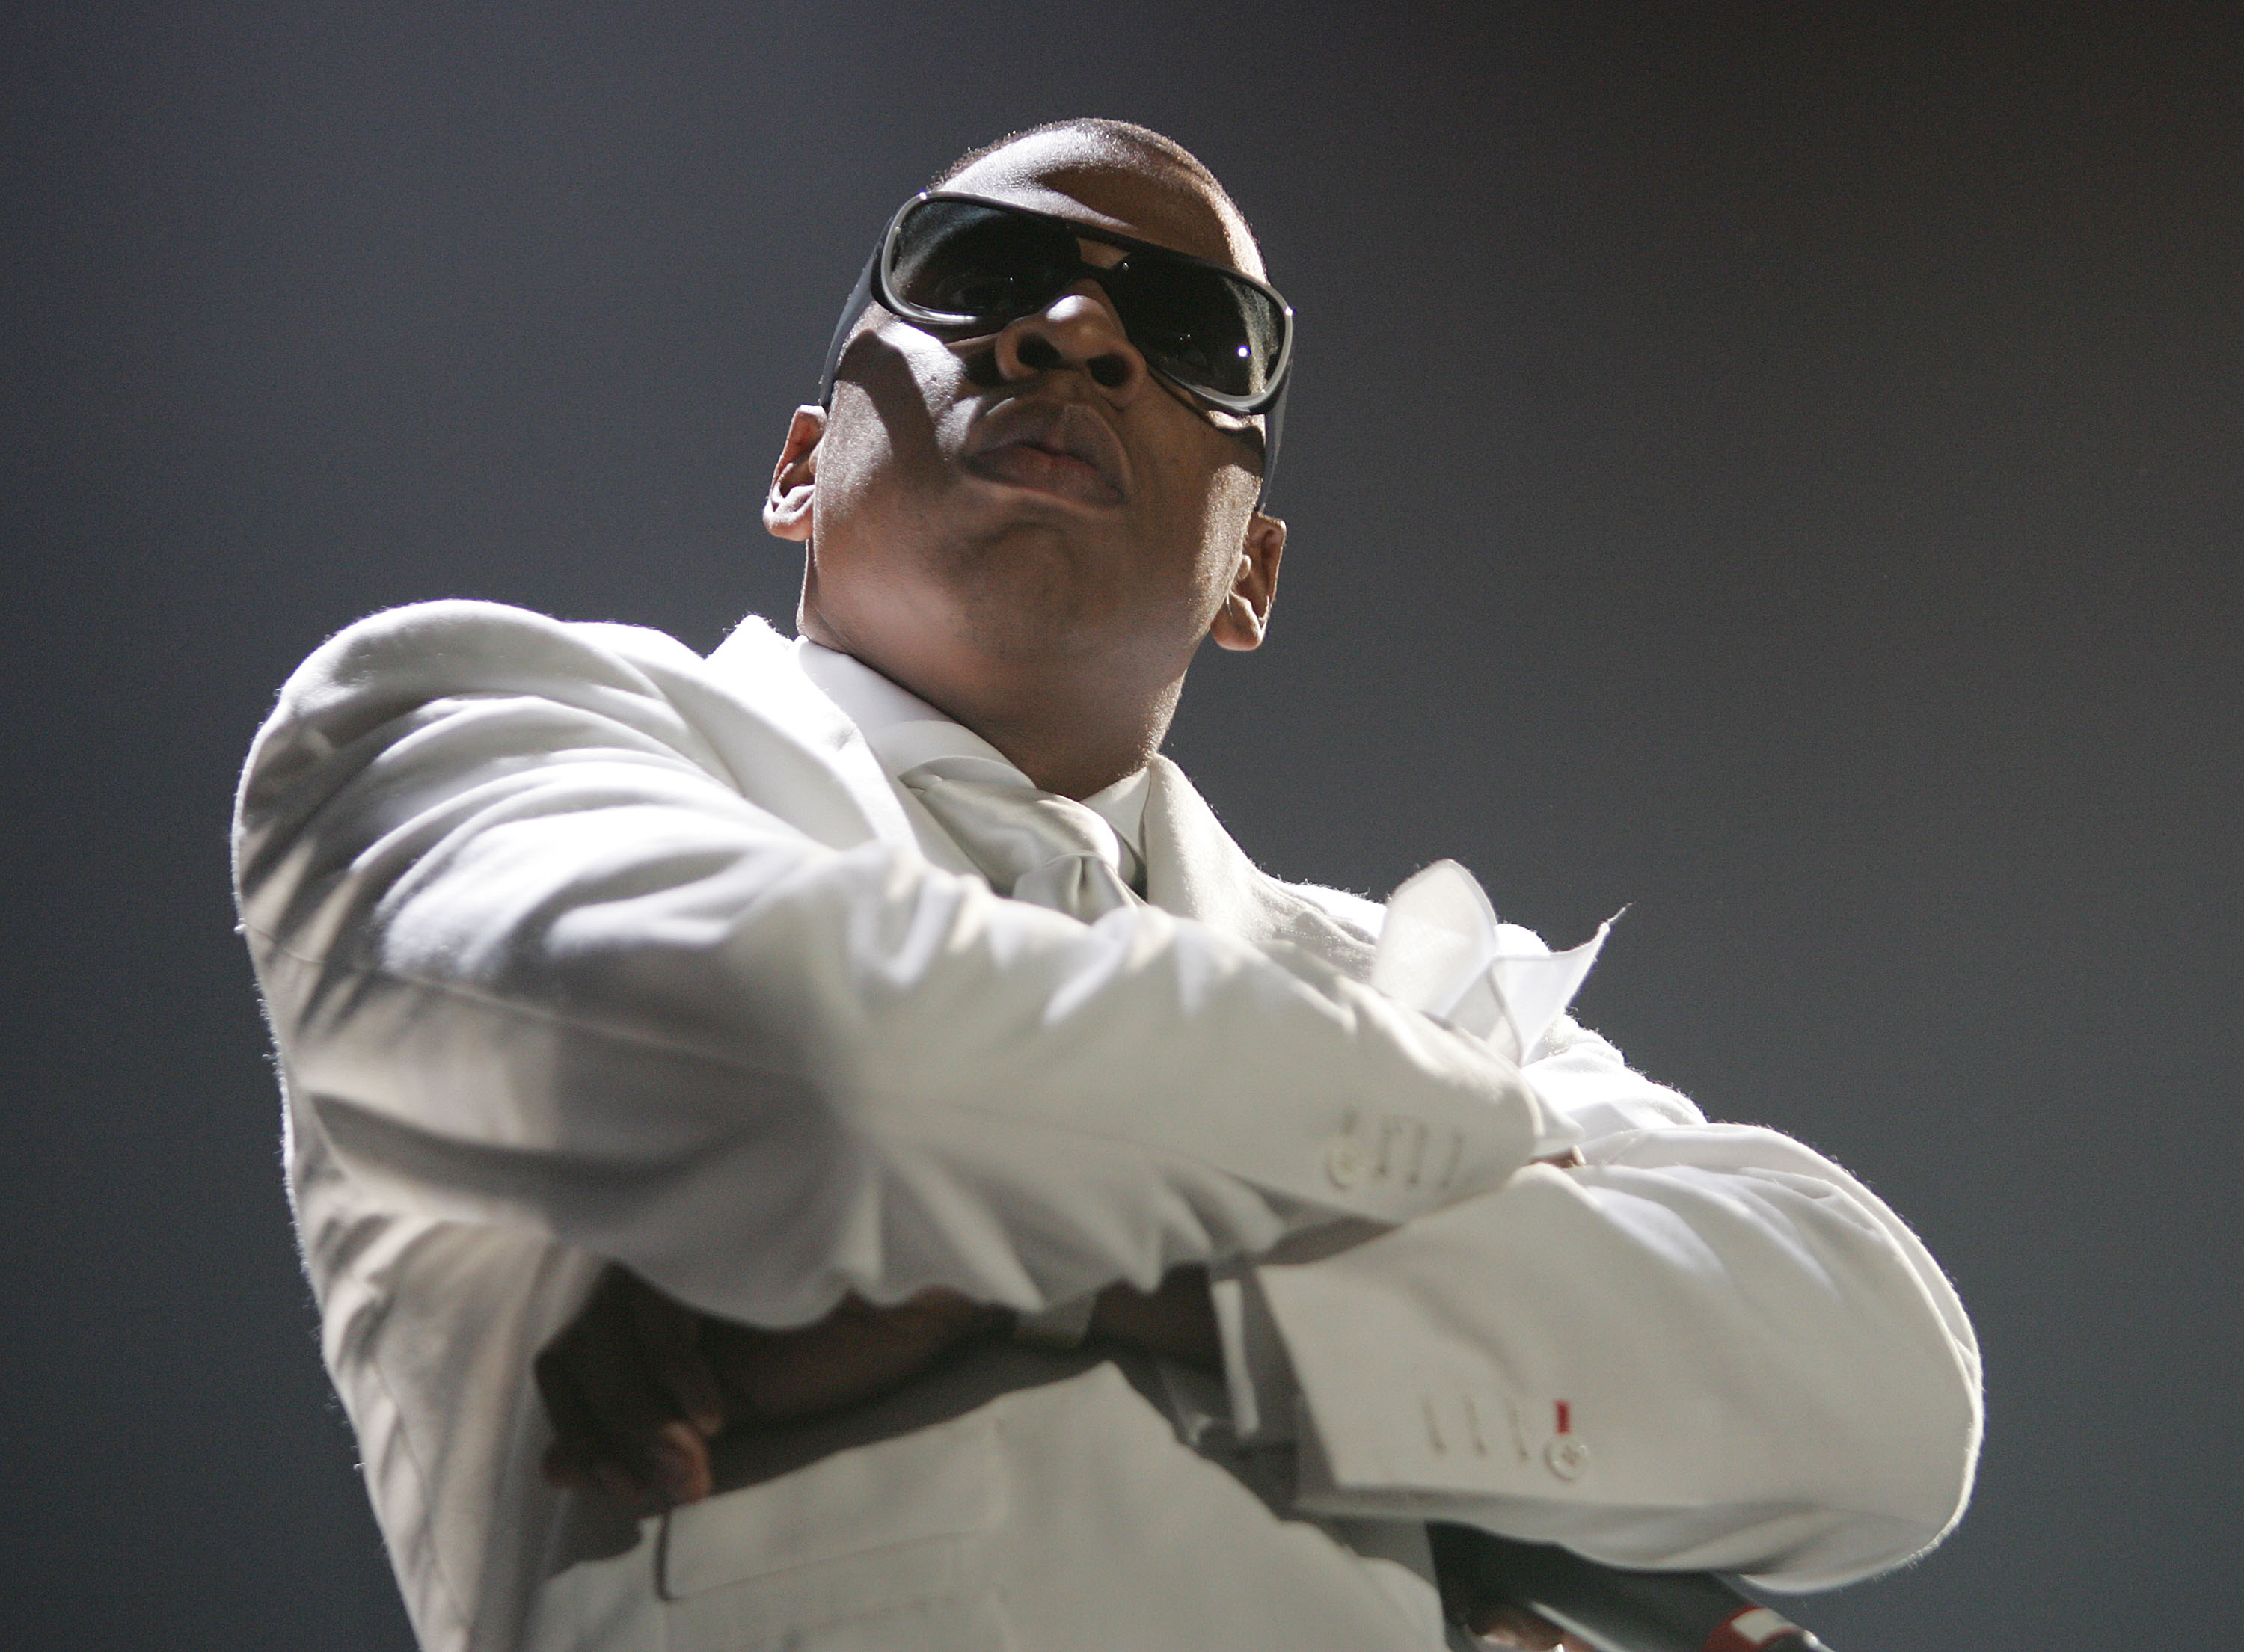 """ROSEMONT, ILL - SEPTEMBER 30: Rapper Jay-Z performs during the """"Best of Both Worlds"""" tour with R. Kelly, September 30, 2004 at the Allstate Arena in Rosemont, Ill. (Photo by Frank Micelotta/Getty Images)"""